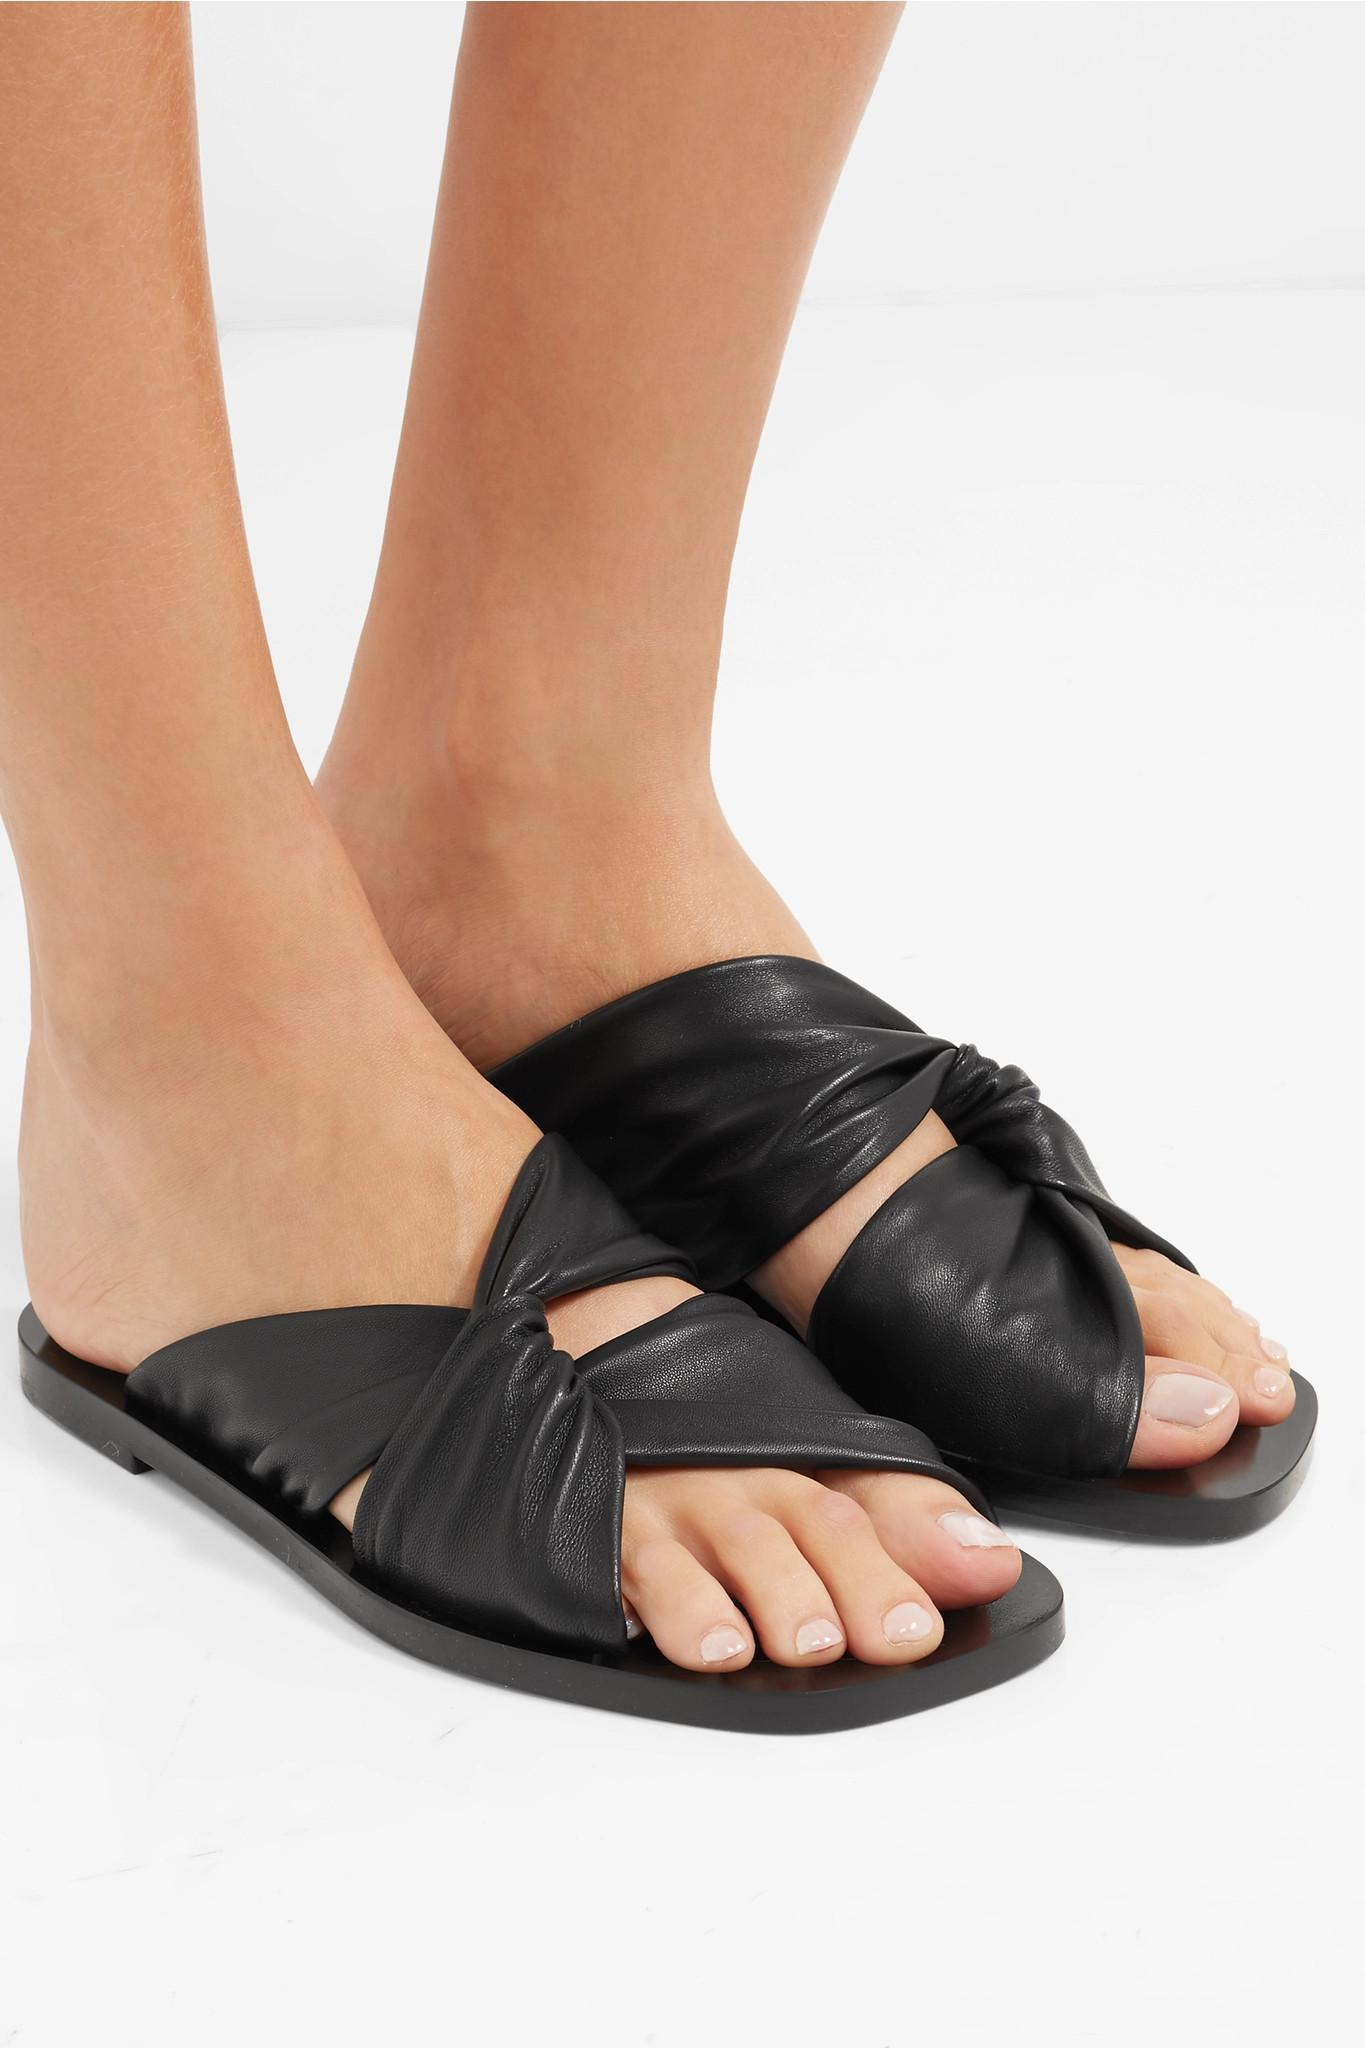 Proenza Schouler Knotted Leather Slides Outlet Manchester Great Sale Manchester Great Sale For Sale Buy Cheap Recommend New Arrival gChSpG4e